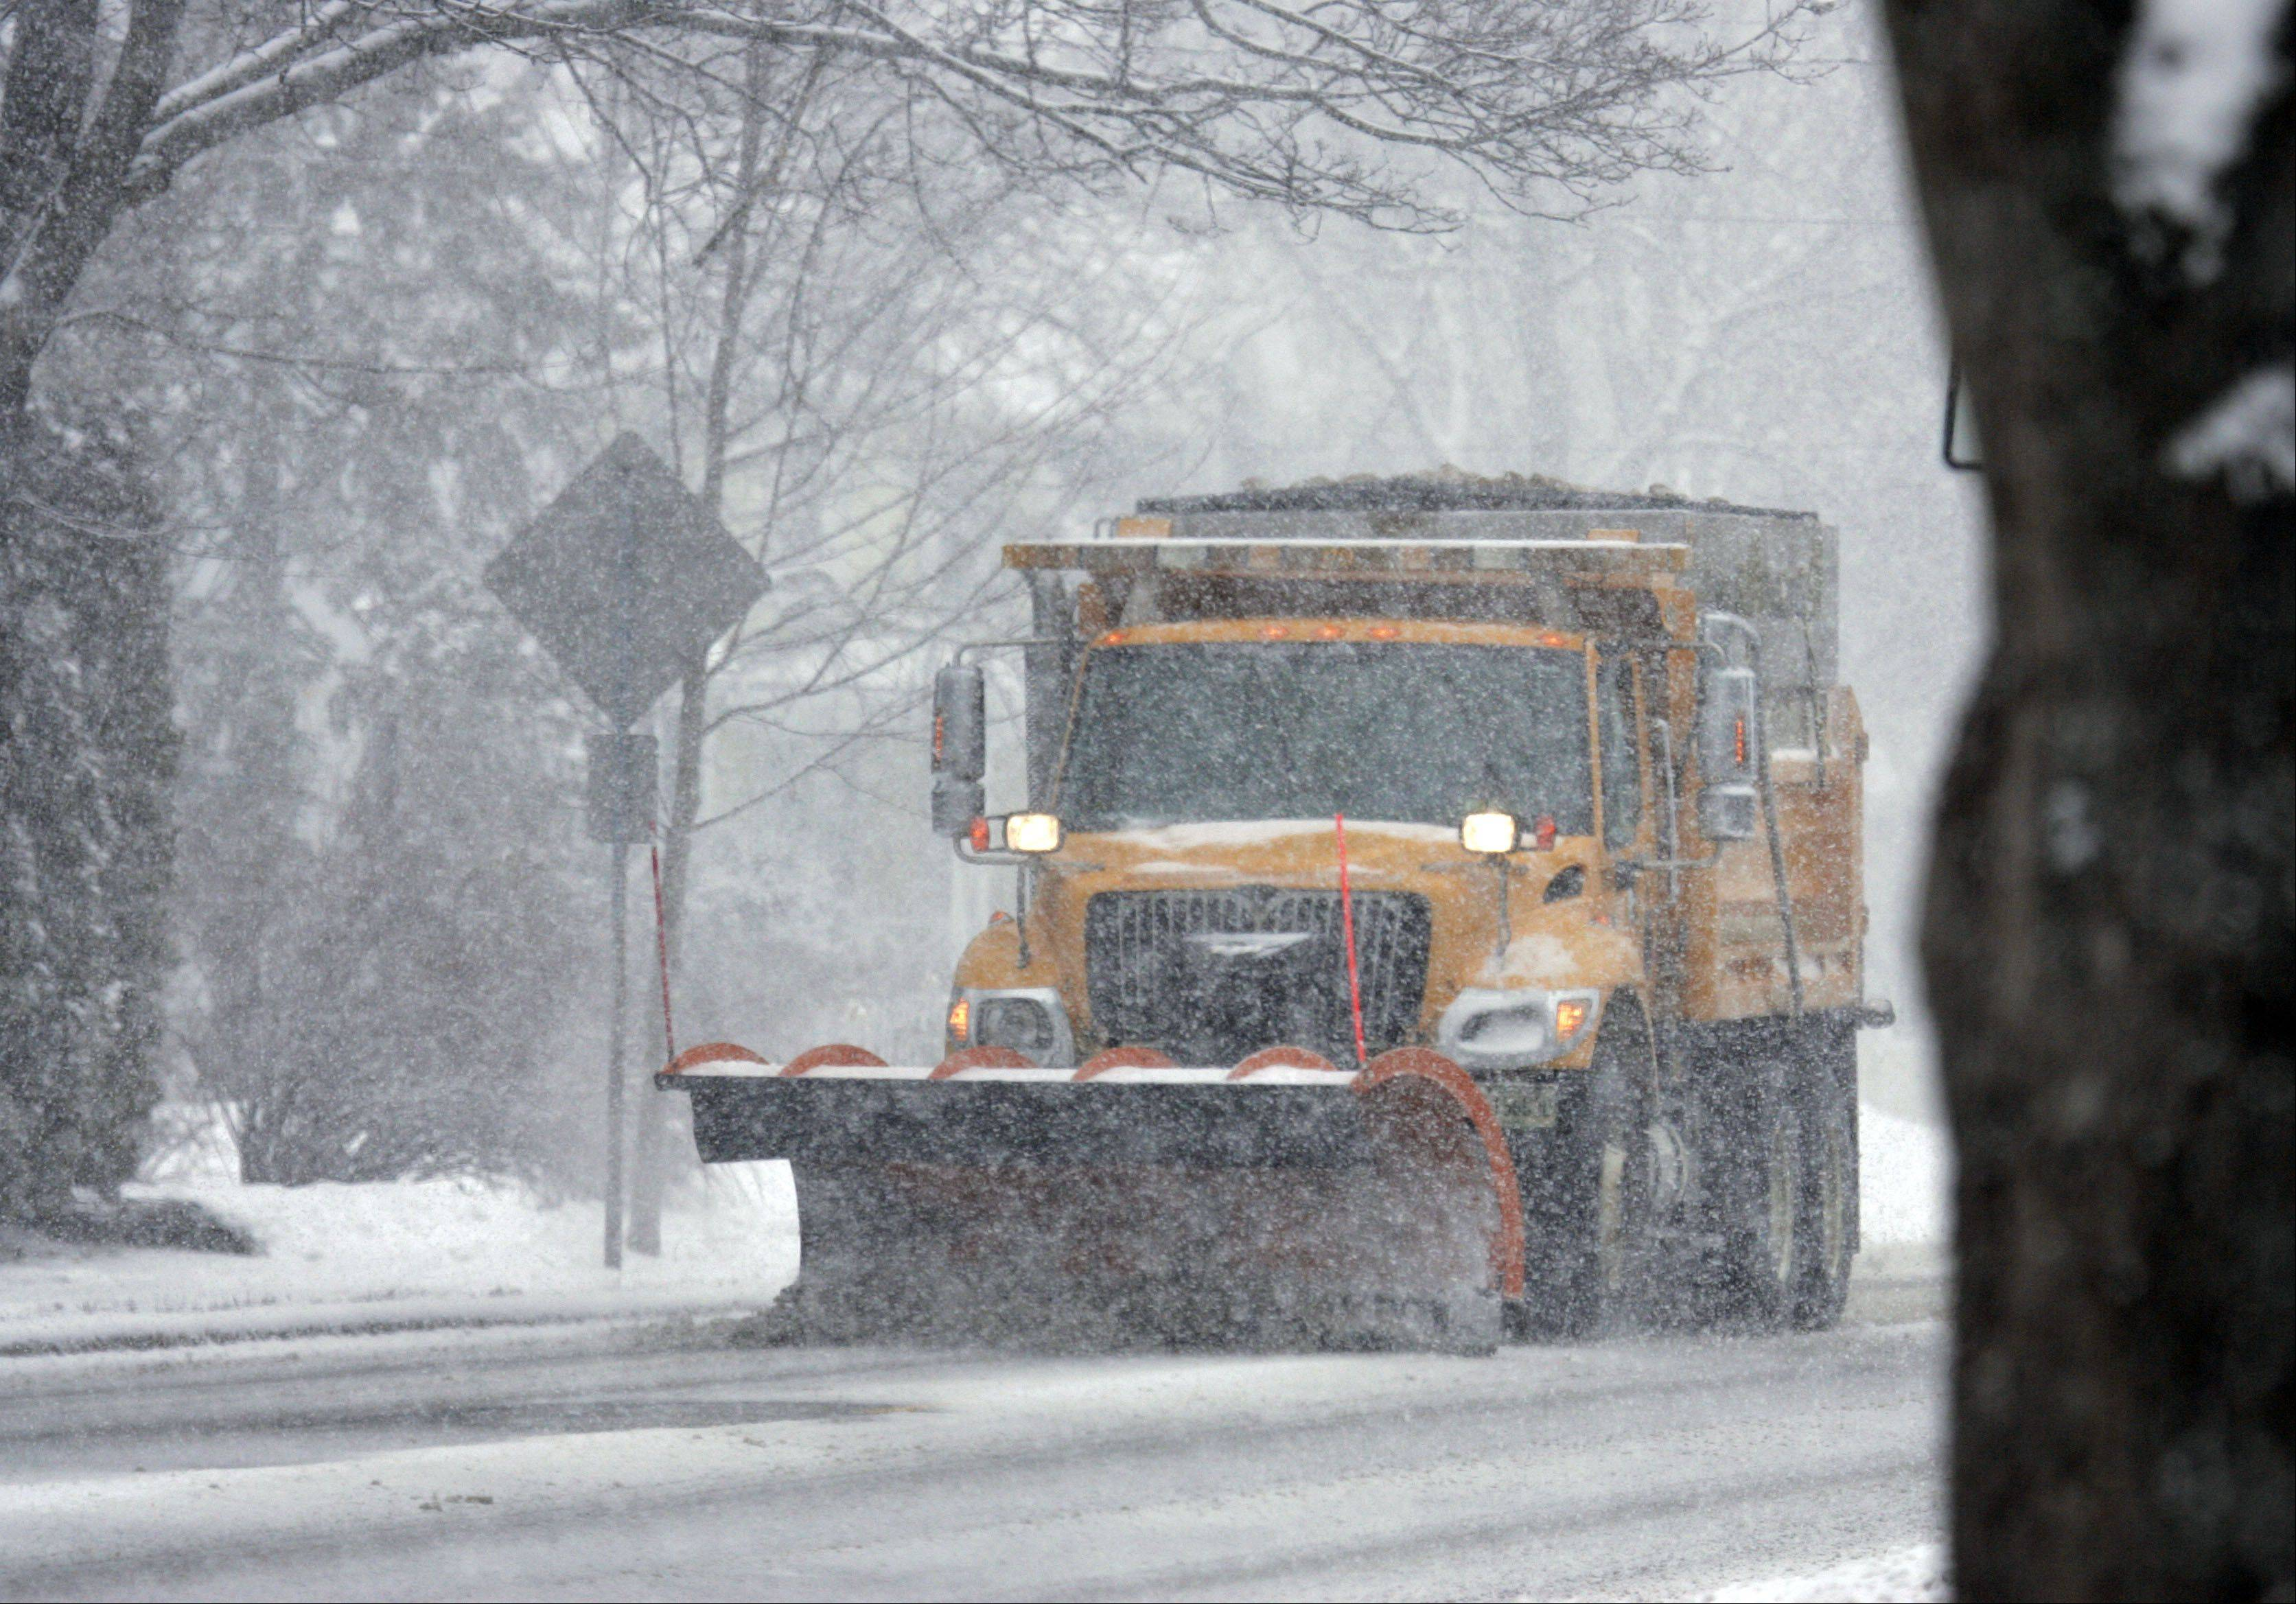 A plow clears Prairie Street in St. Charles as the area prepares for the big storm Tuesday.